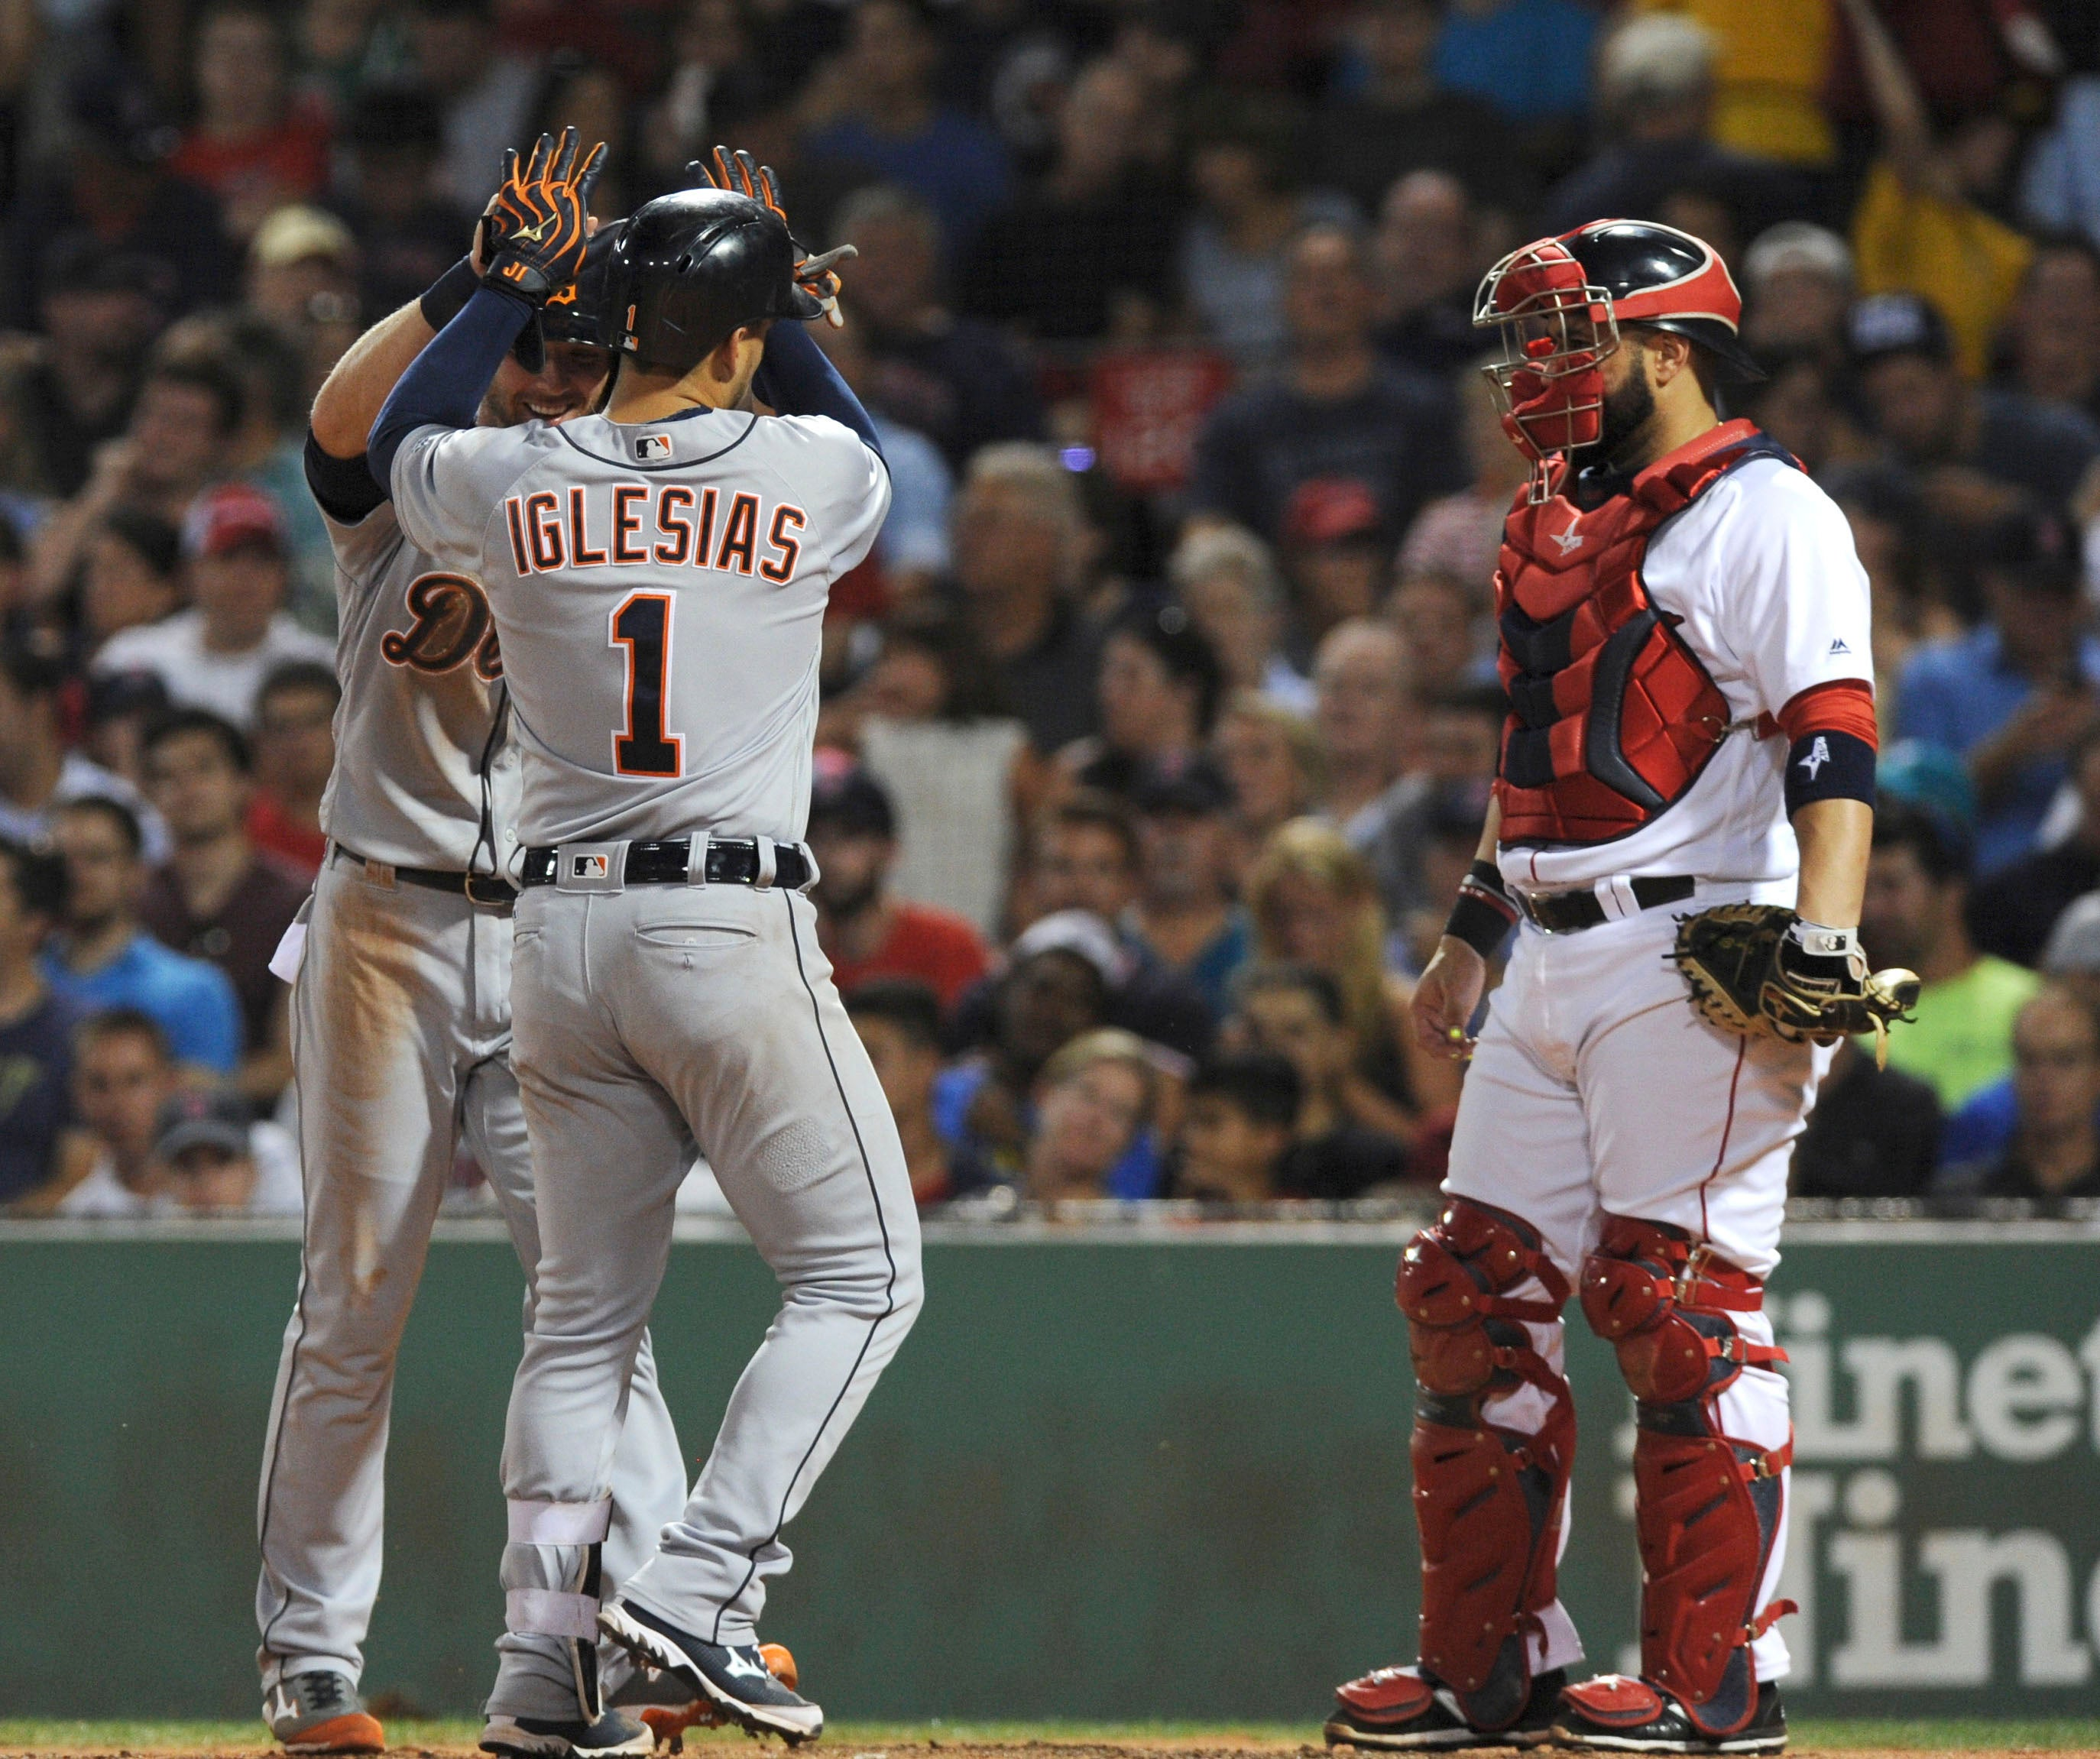 2016-07-26t011922z_1438824376_nocid_rtrmadp_3_mlb-detroit-tigers-at-boston-red-sox